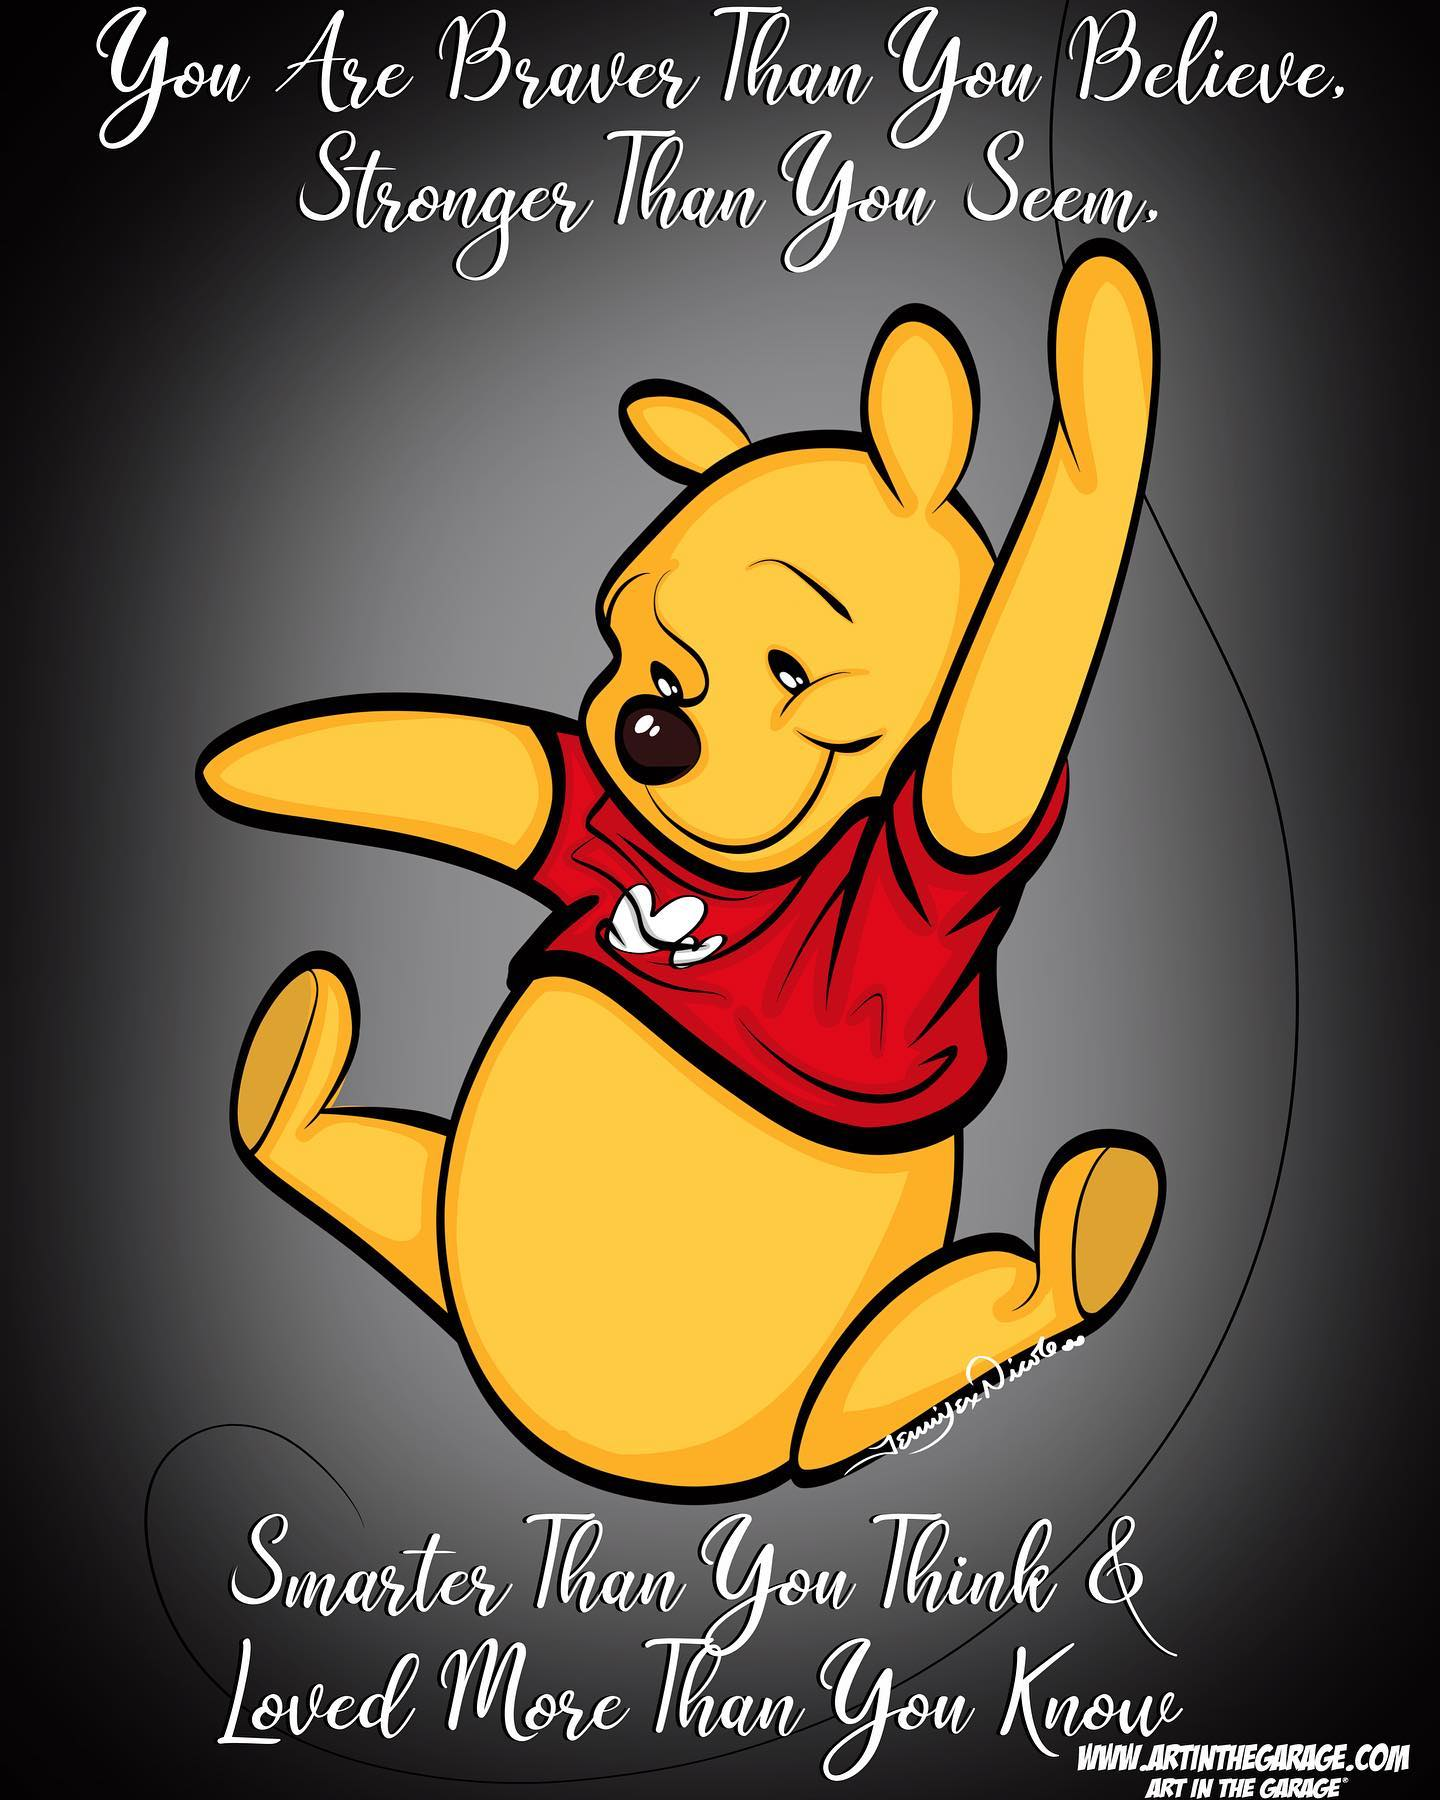 1-18-21 Winnie The Pooh Day